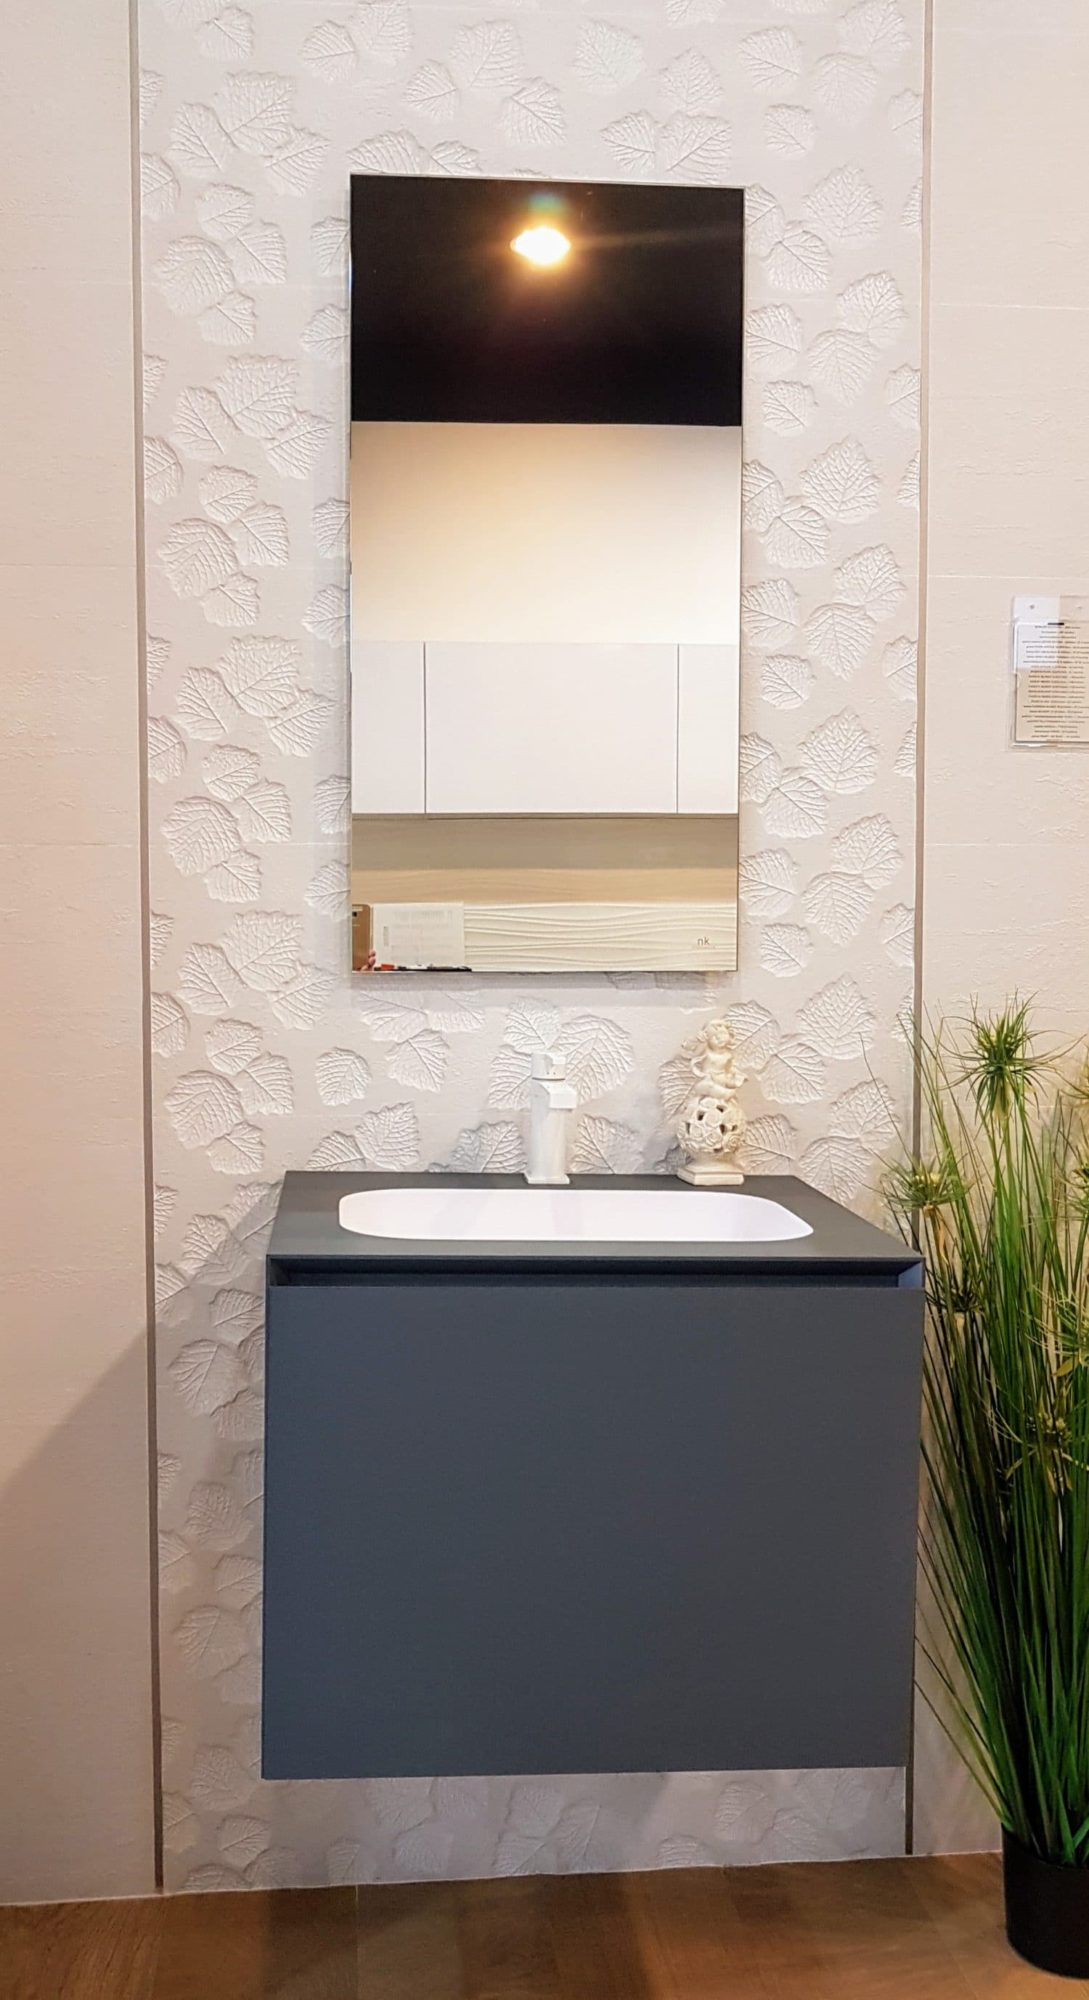 Mobilier baie-SOFT Noche Ghost -Gamadecor/Porcelanosa Grupo